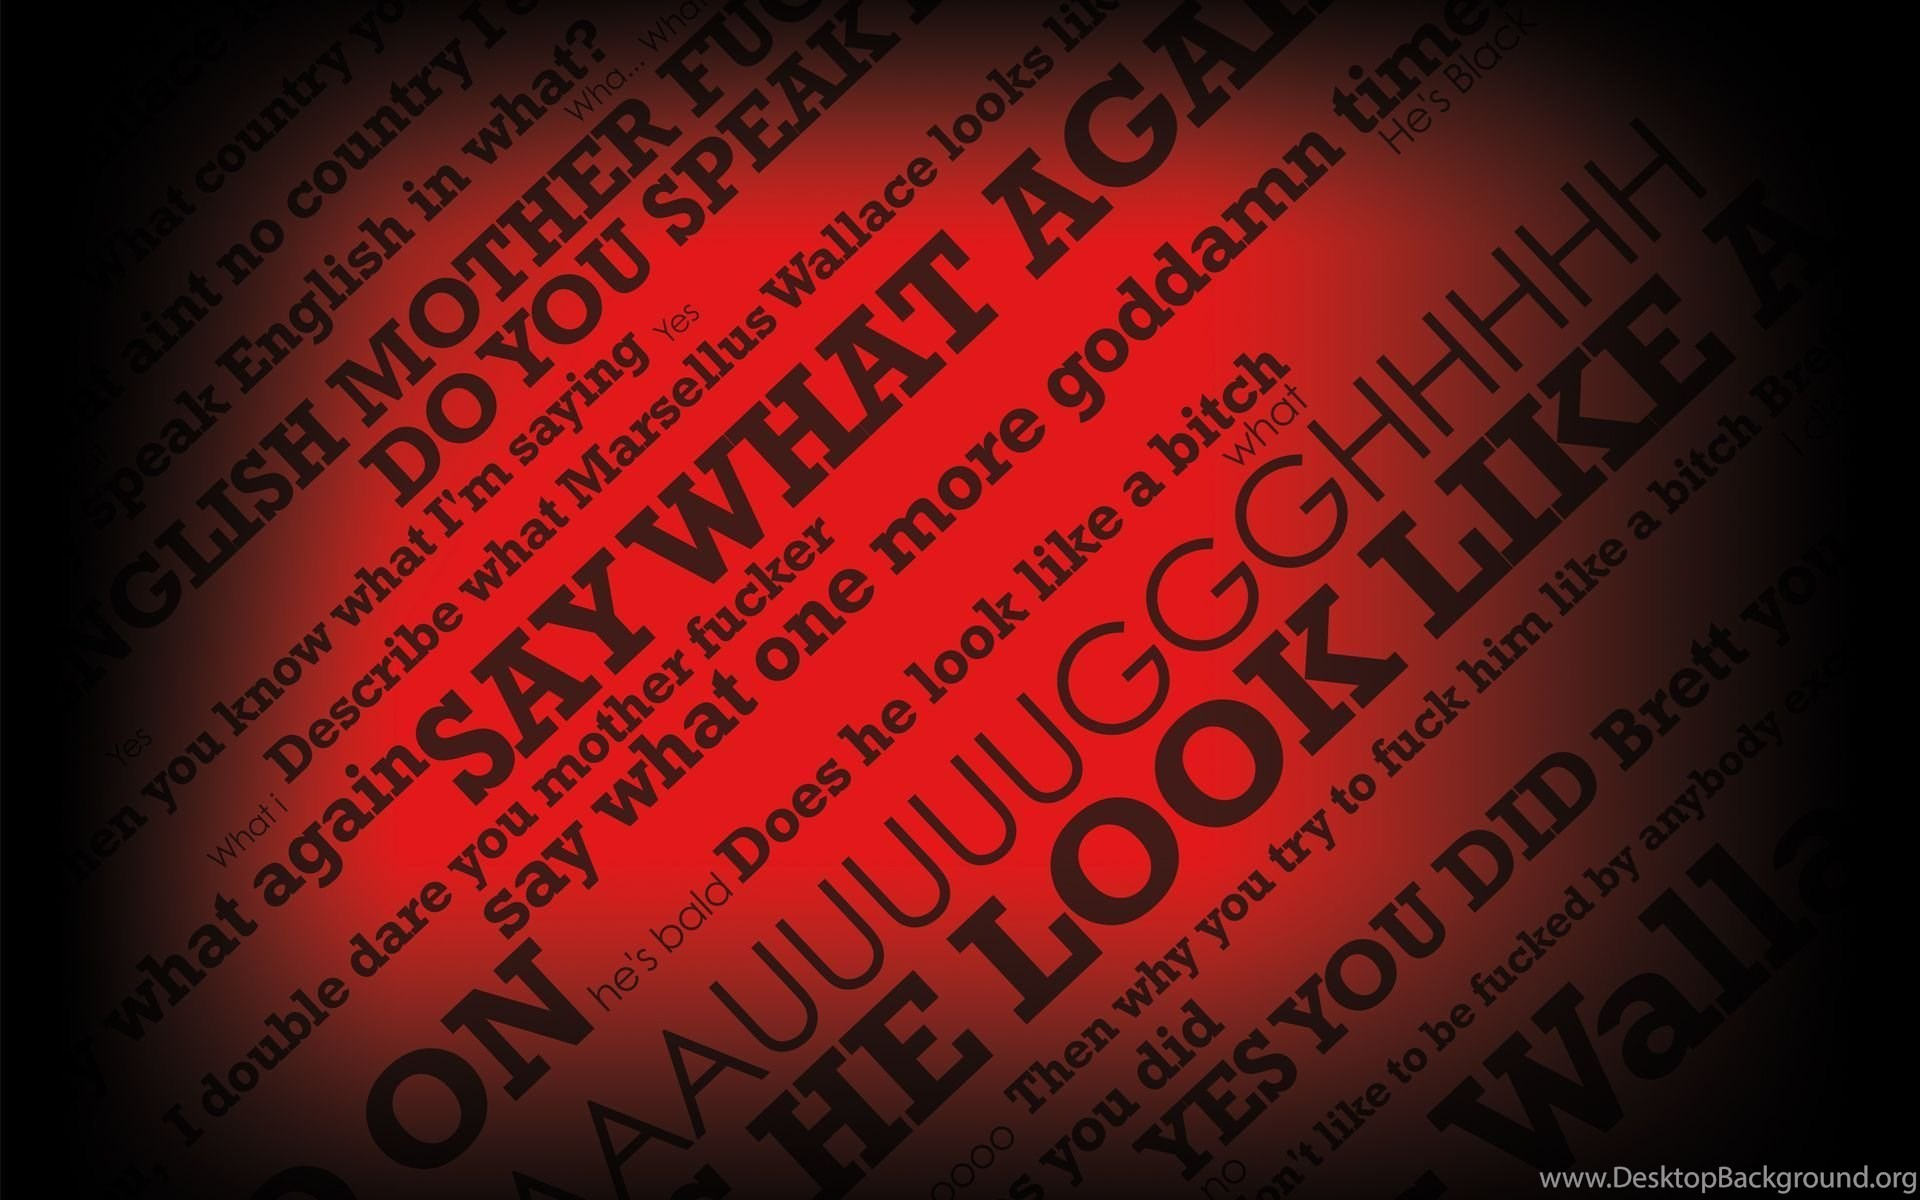 29368 download dirty words with black red backgrounds gaming